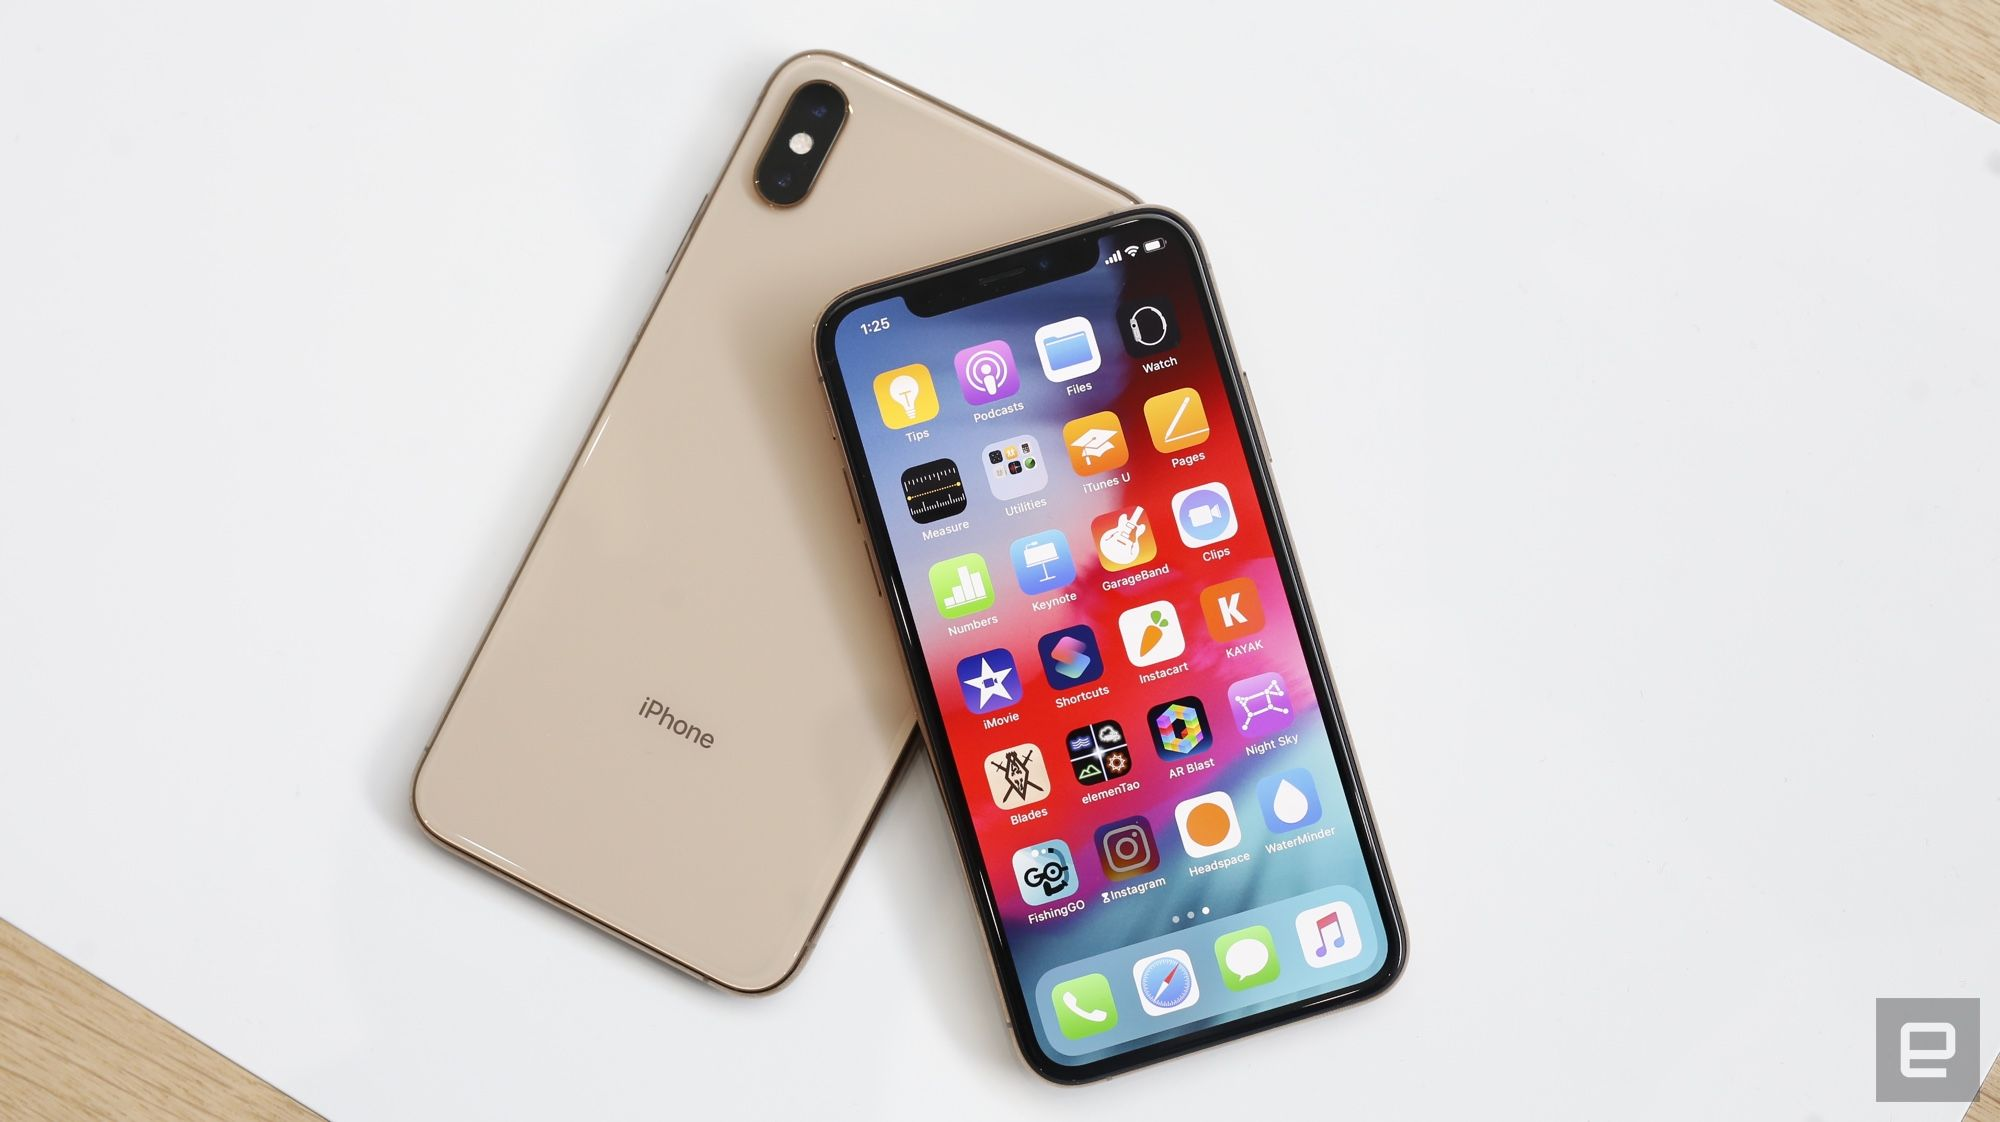 Best Replica Clone Fake Iphone Xs With Wireless Charging Face Id 4g Lte Ios12 Free Shipping From Eu Us Au Uk Hk Warehous Iphone Iphone Insurance New Iphone